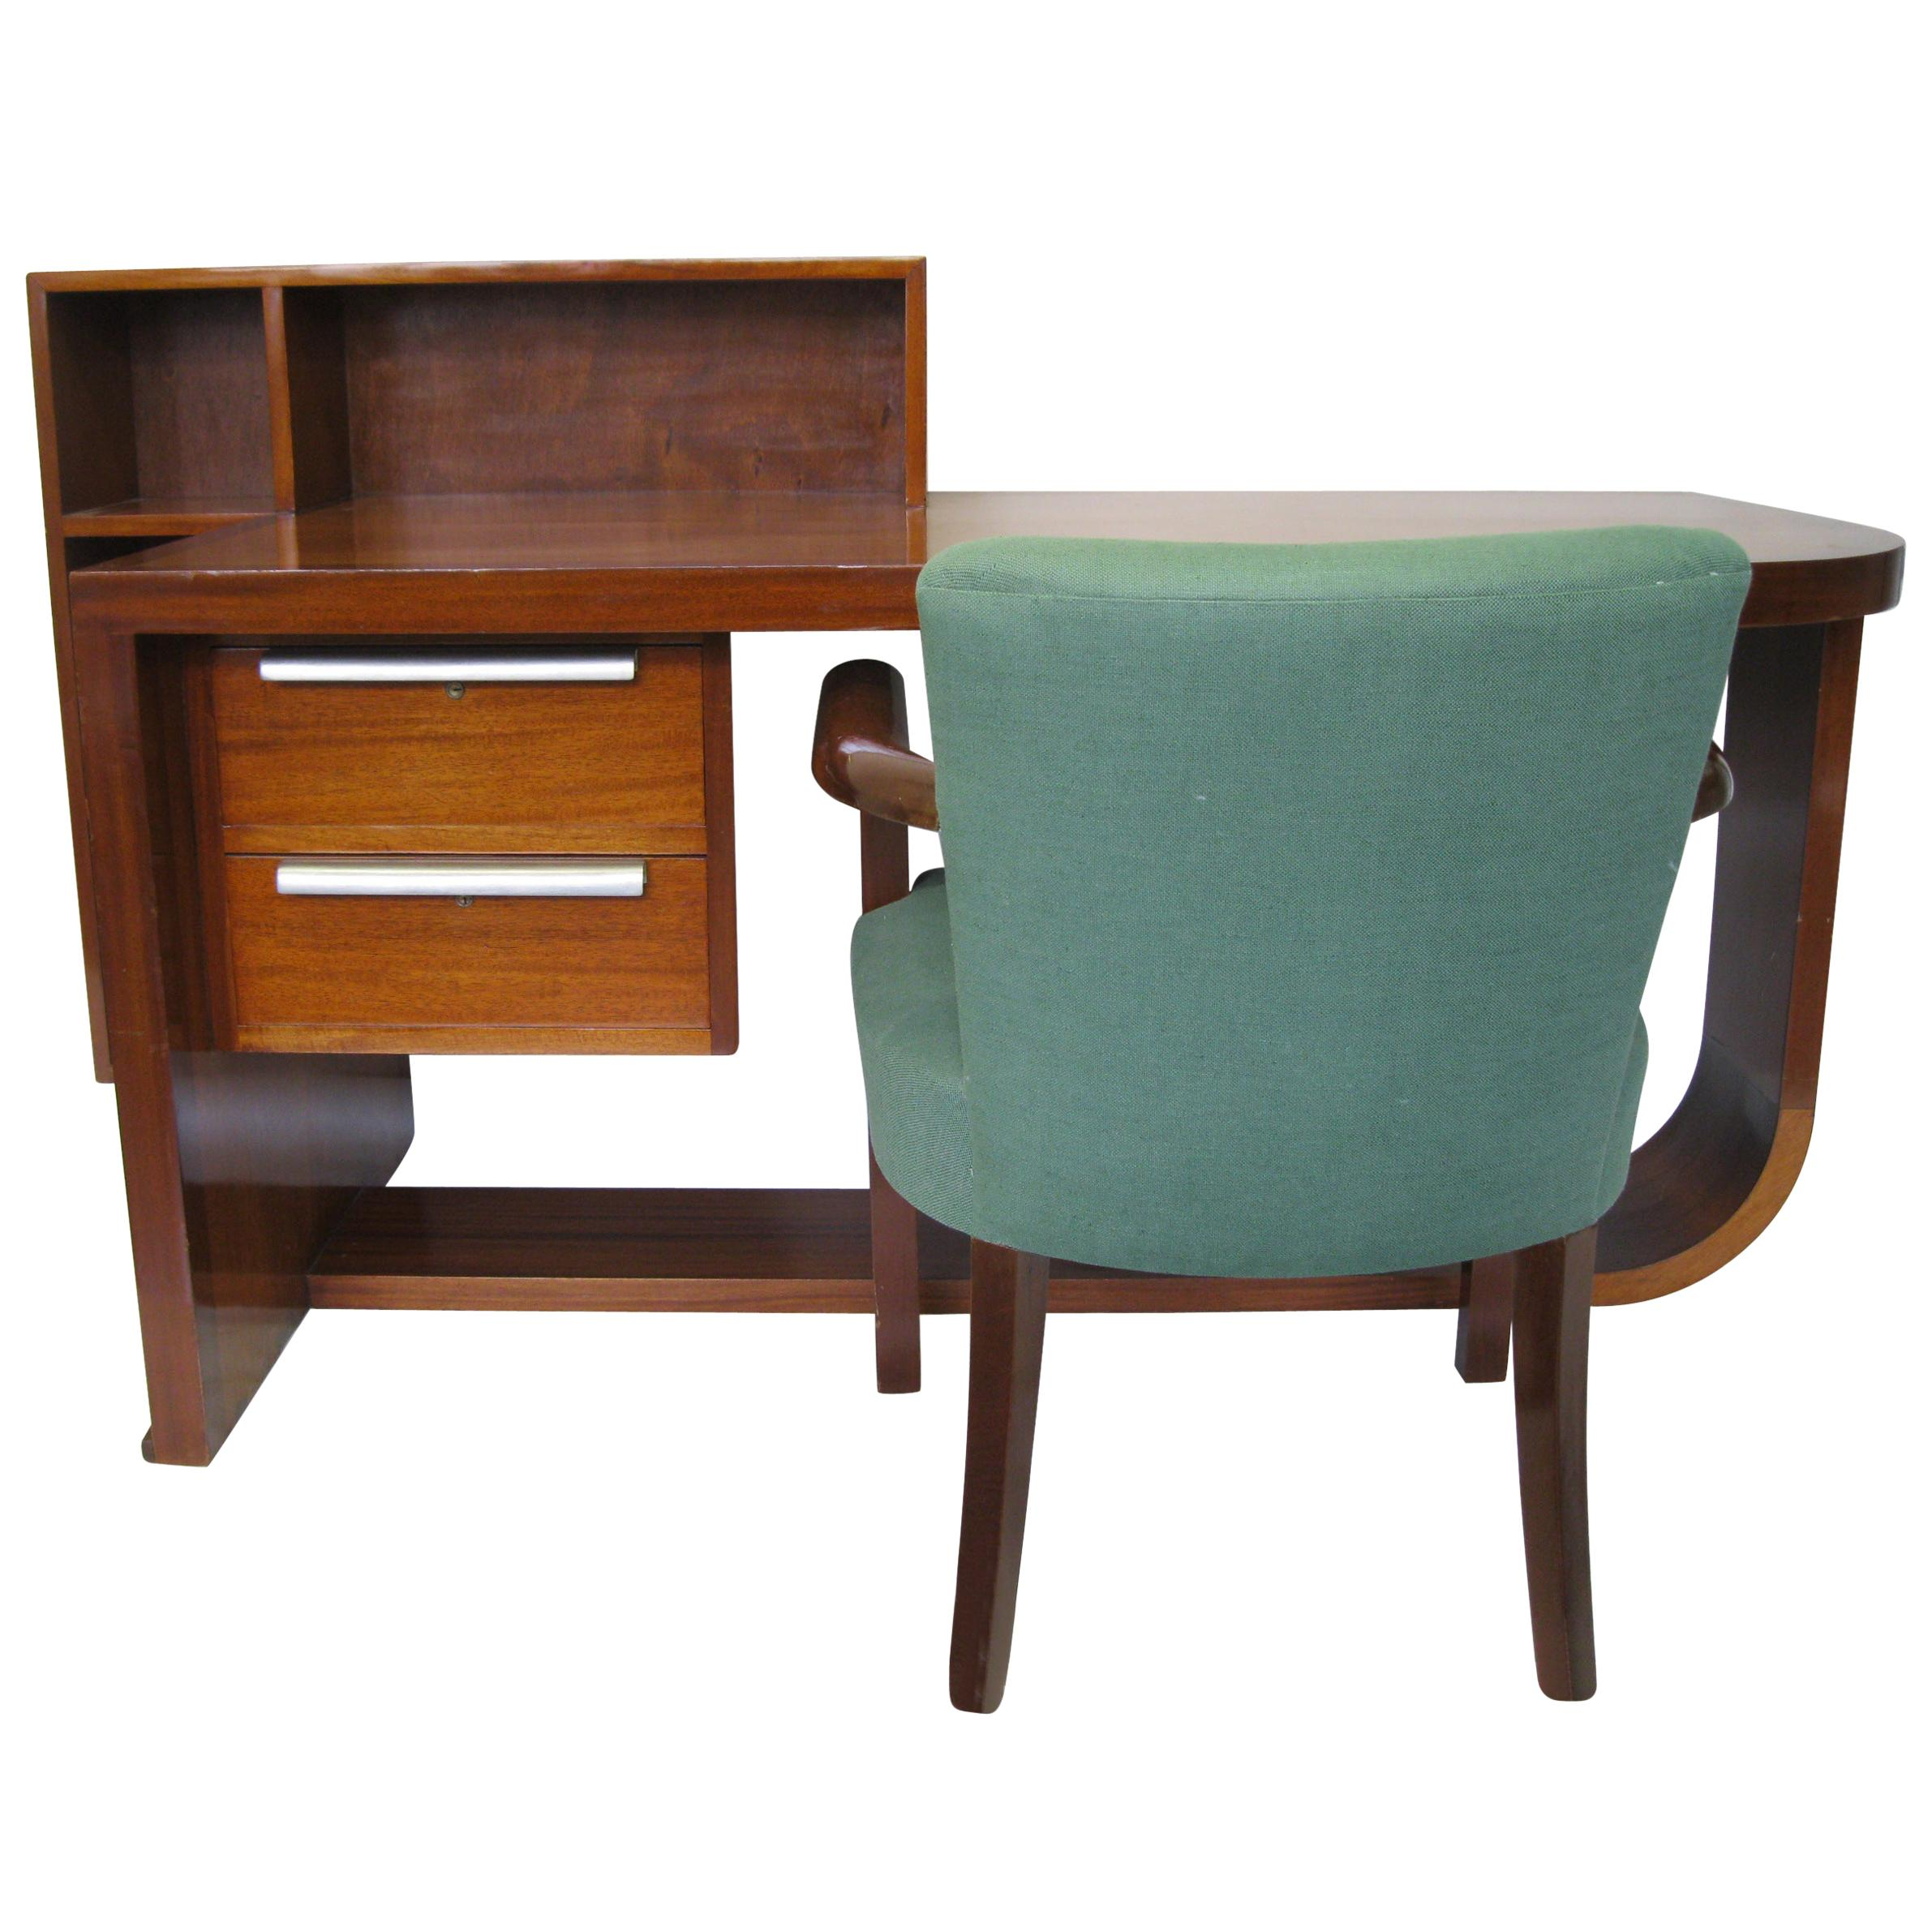 Art Deco Mahogany Desk and Chair by Rene Herbst